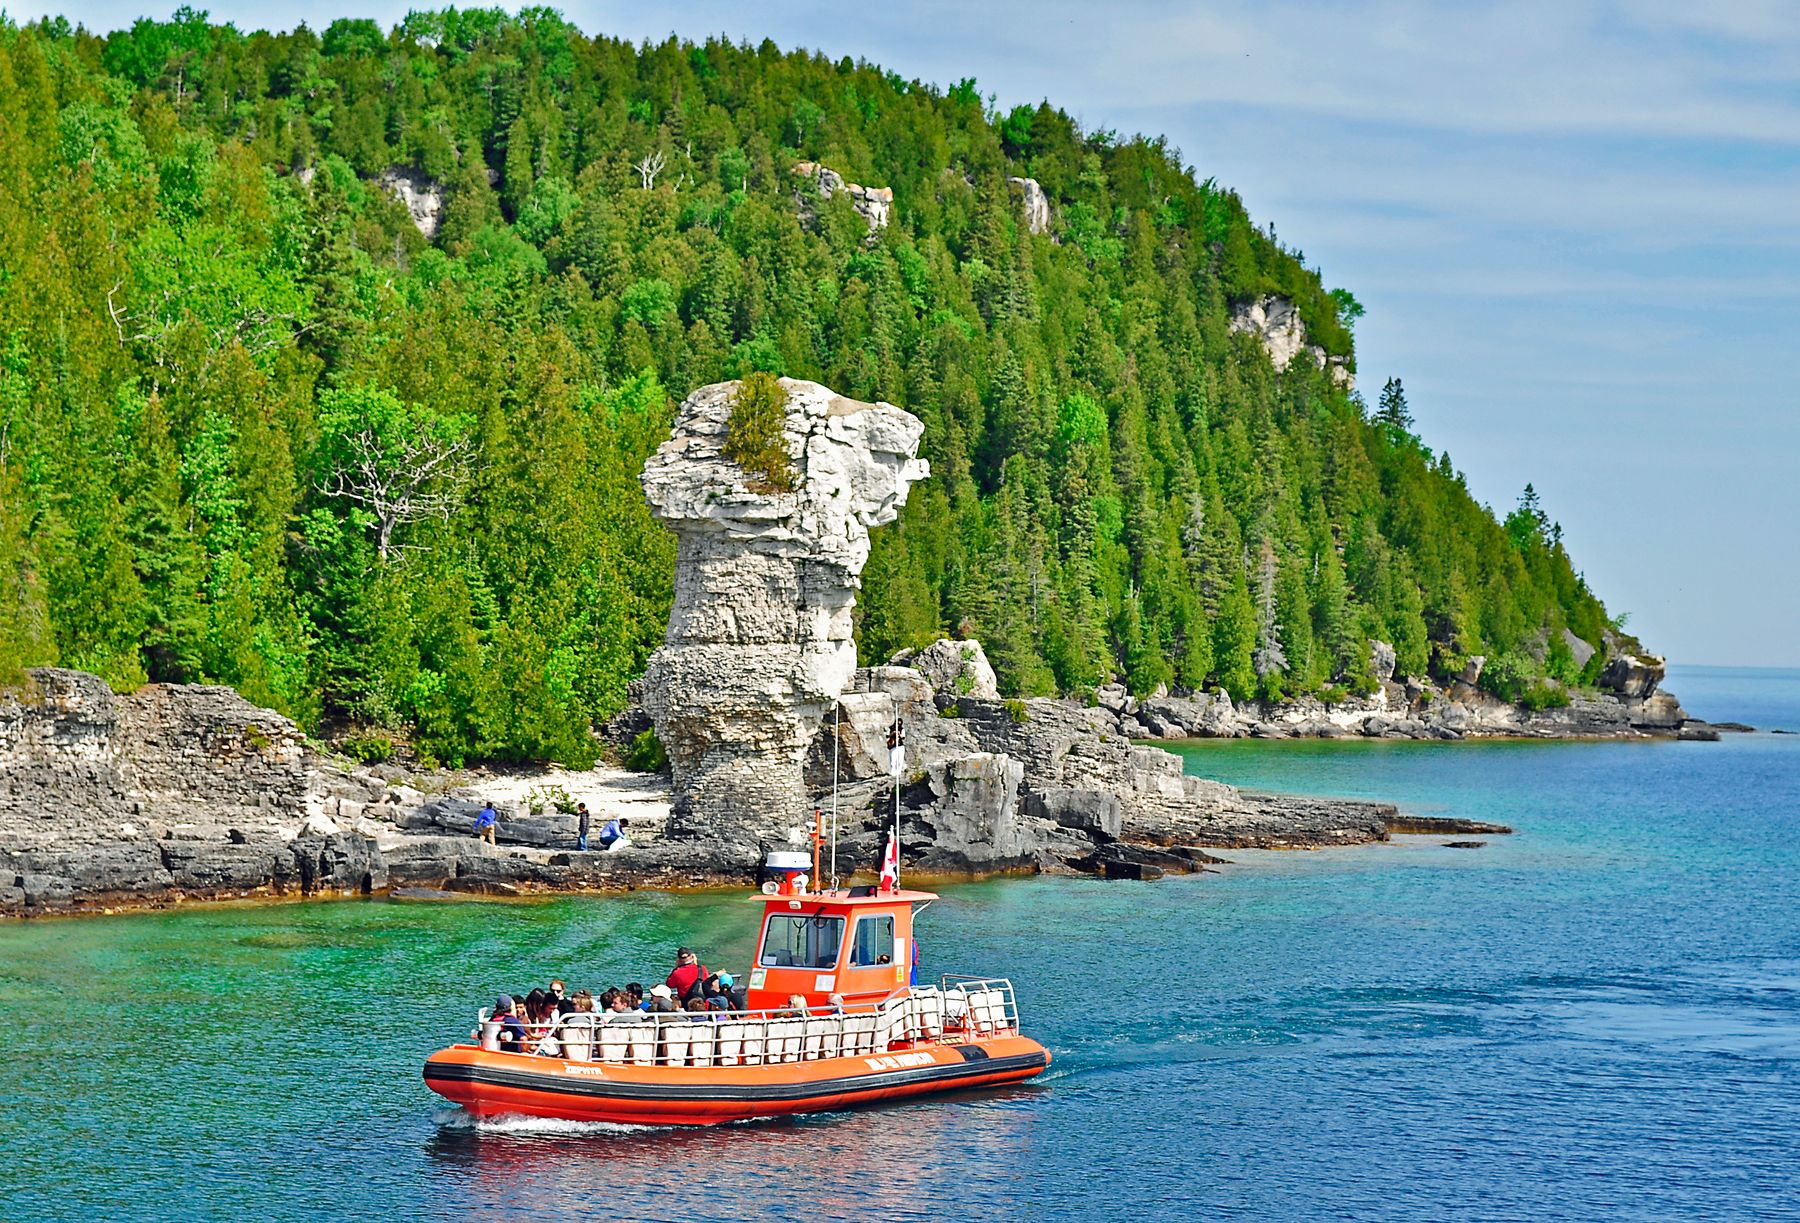 Tobermory and Flower Pot Island in Ontario